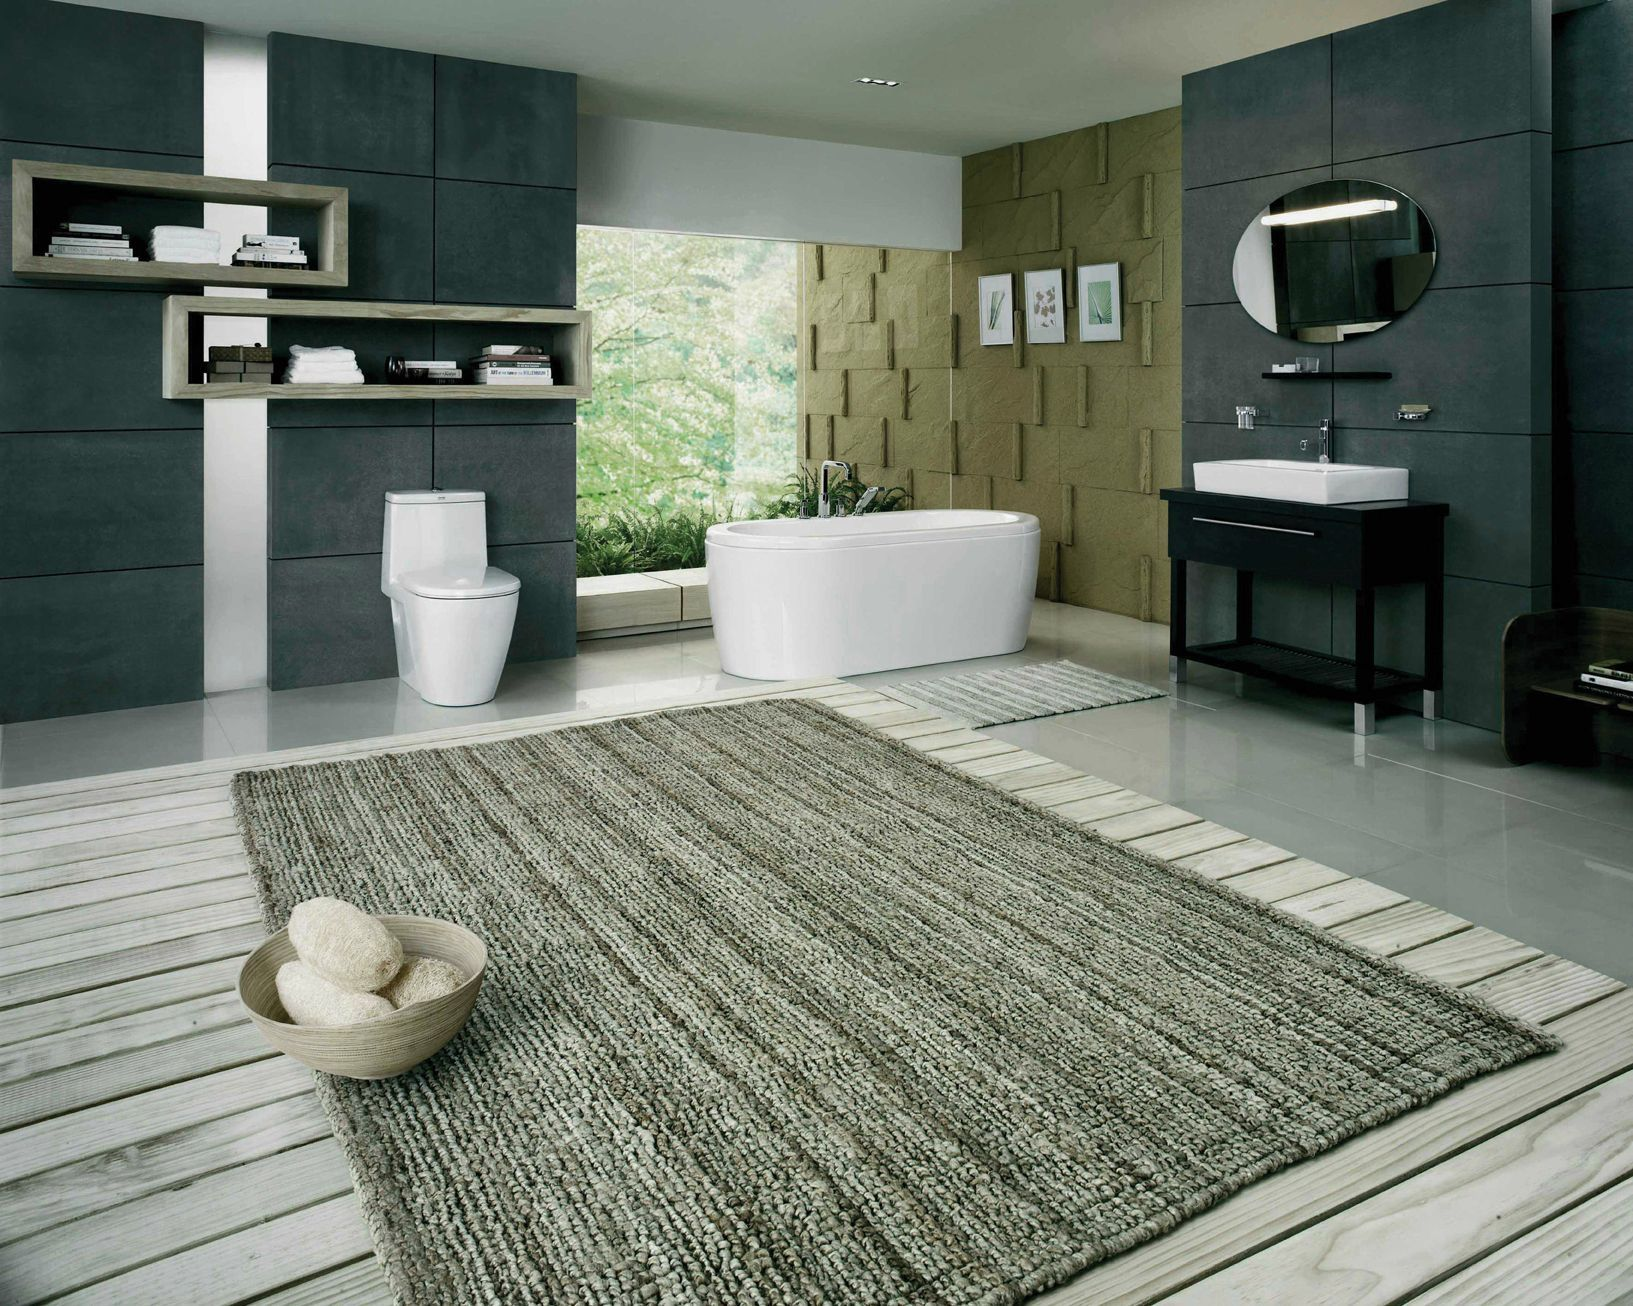 Bust Of Large Bathroom Rugs Bathroom Design Inspiration - Large bathroom rugs for bathroom decorating ideas